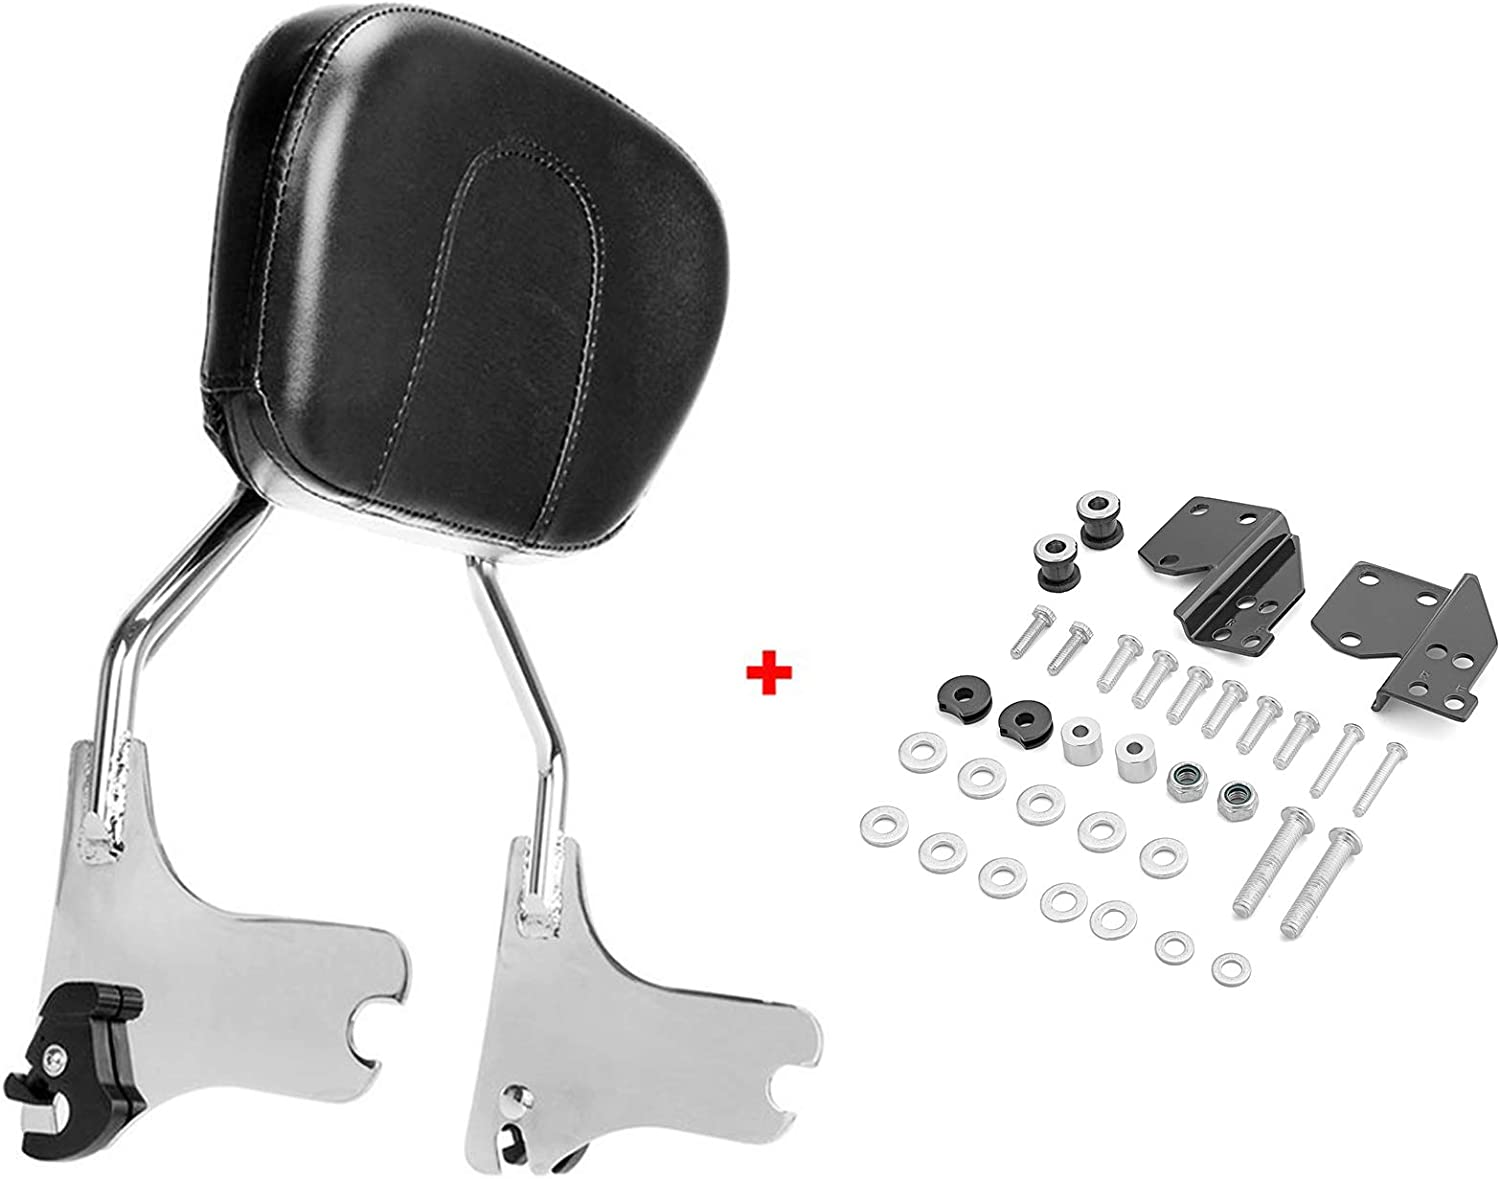 ASD Detachable Chrome Passenger Sissy Bar W//Backrest Pad /& 4-Point Docking Hardware Kit Compatible with Harley Davidson 1997-2008 Touring Electra Glide Road King Street Glide